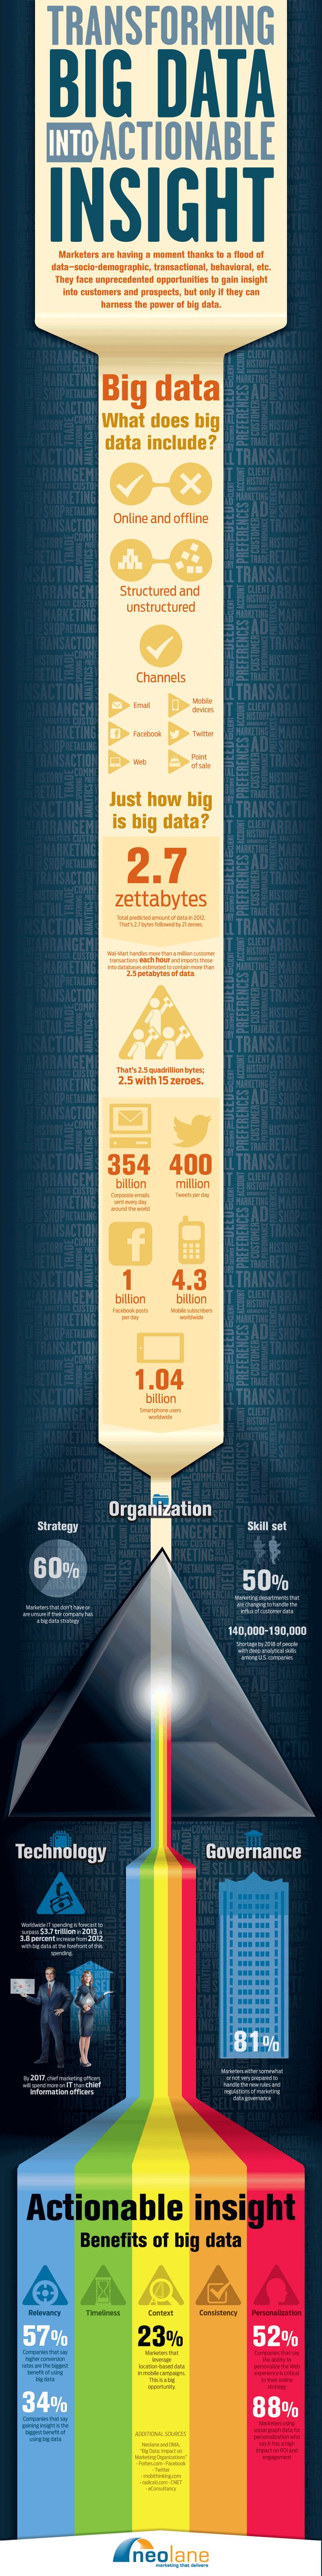 #Infographic: Transforming #BigData into Actionable Insight ow.ly/gZJ5E Reality or Hope? ow.ly/gZJ5F #mrx #newmr #iiex